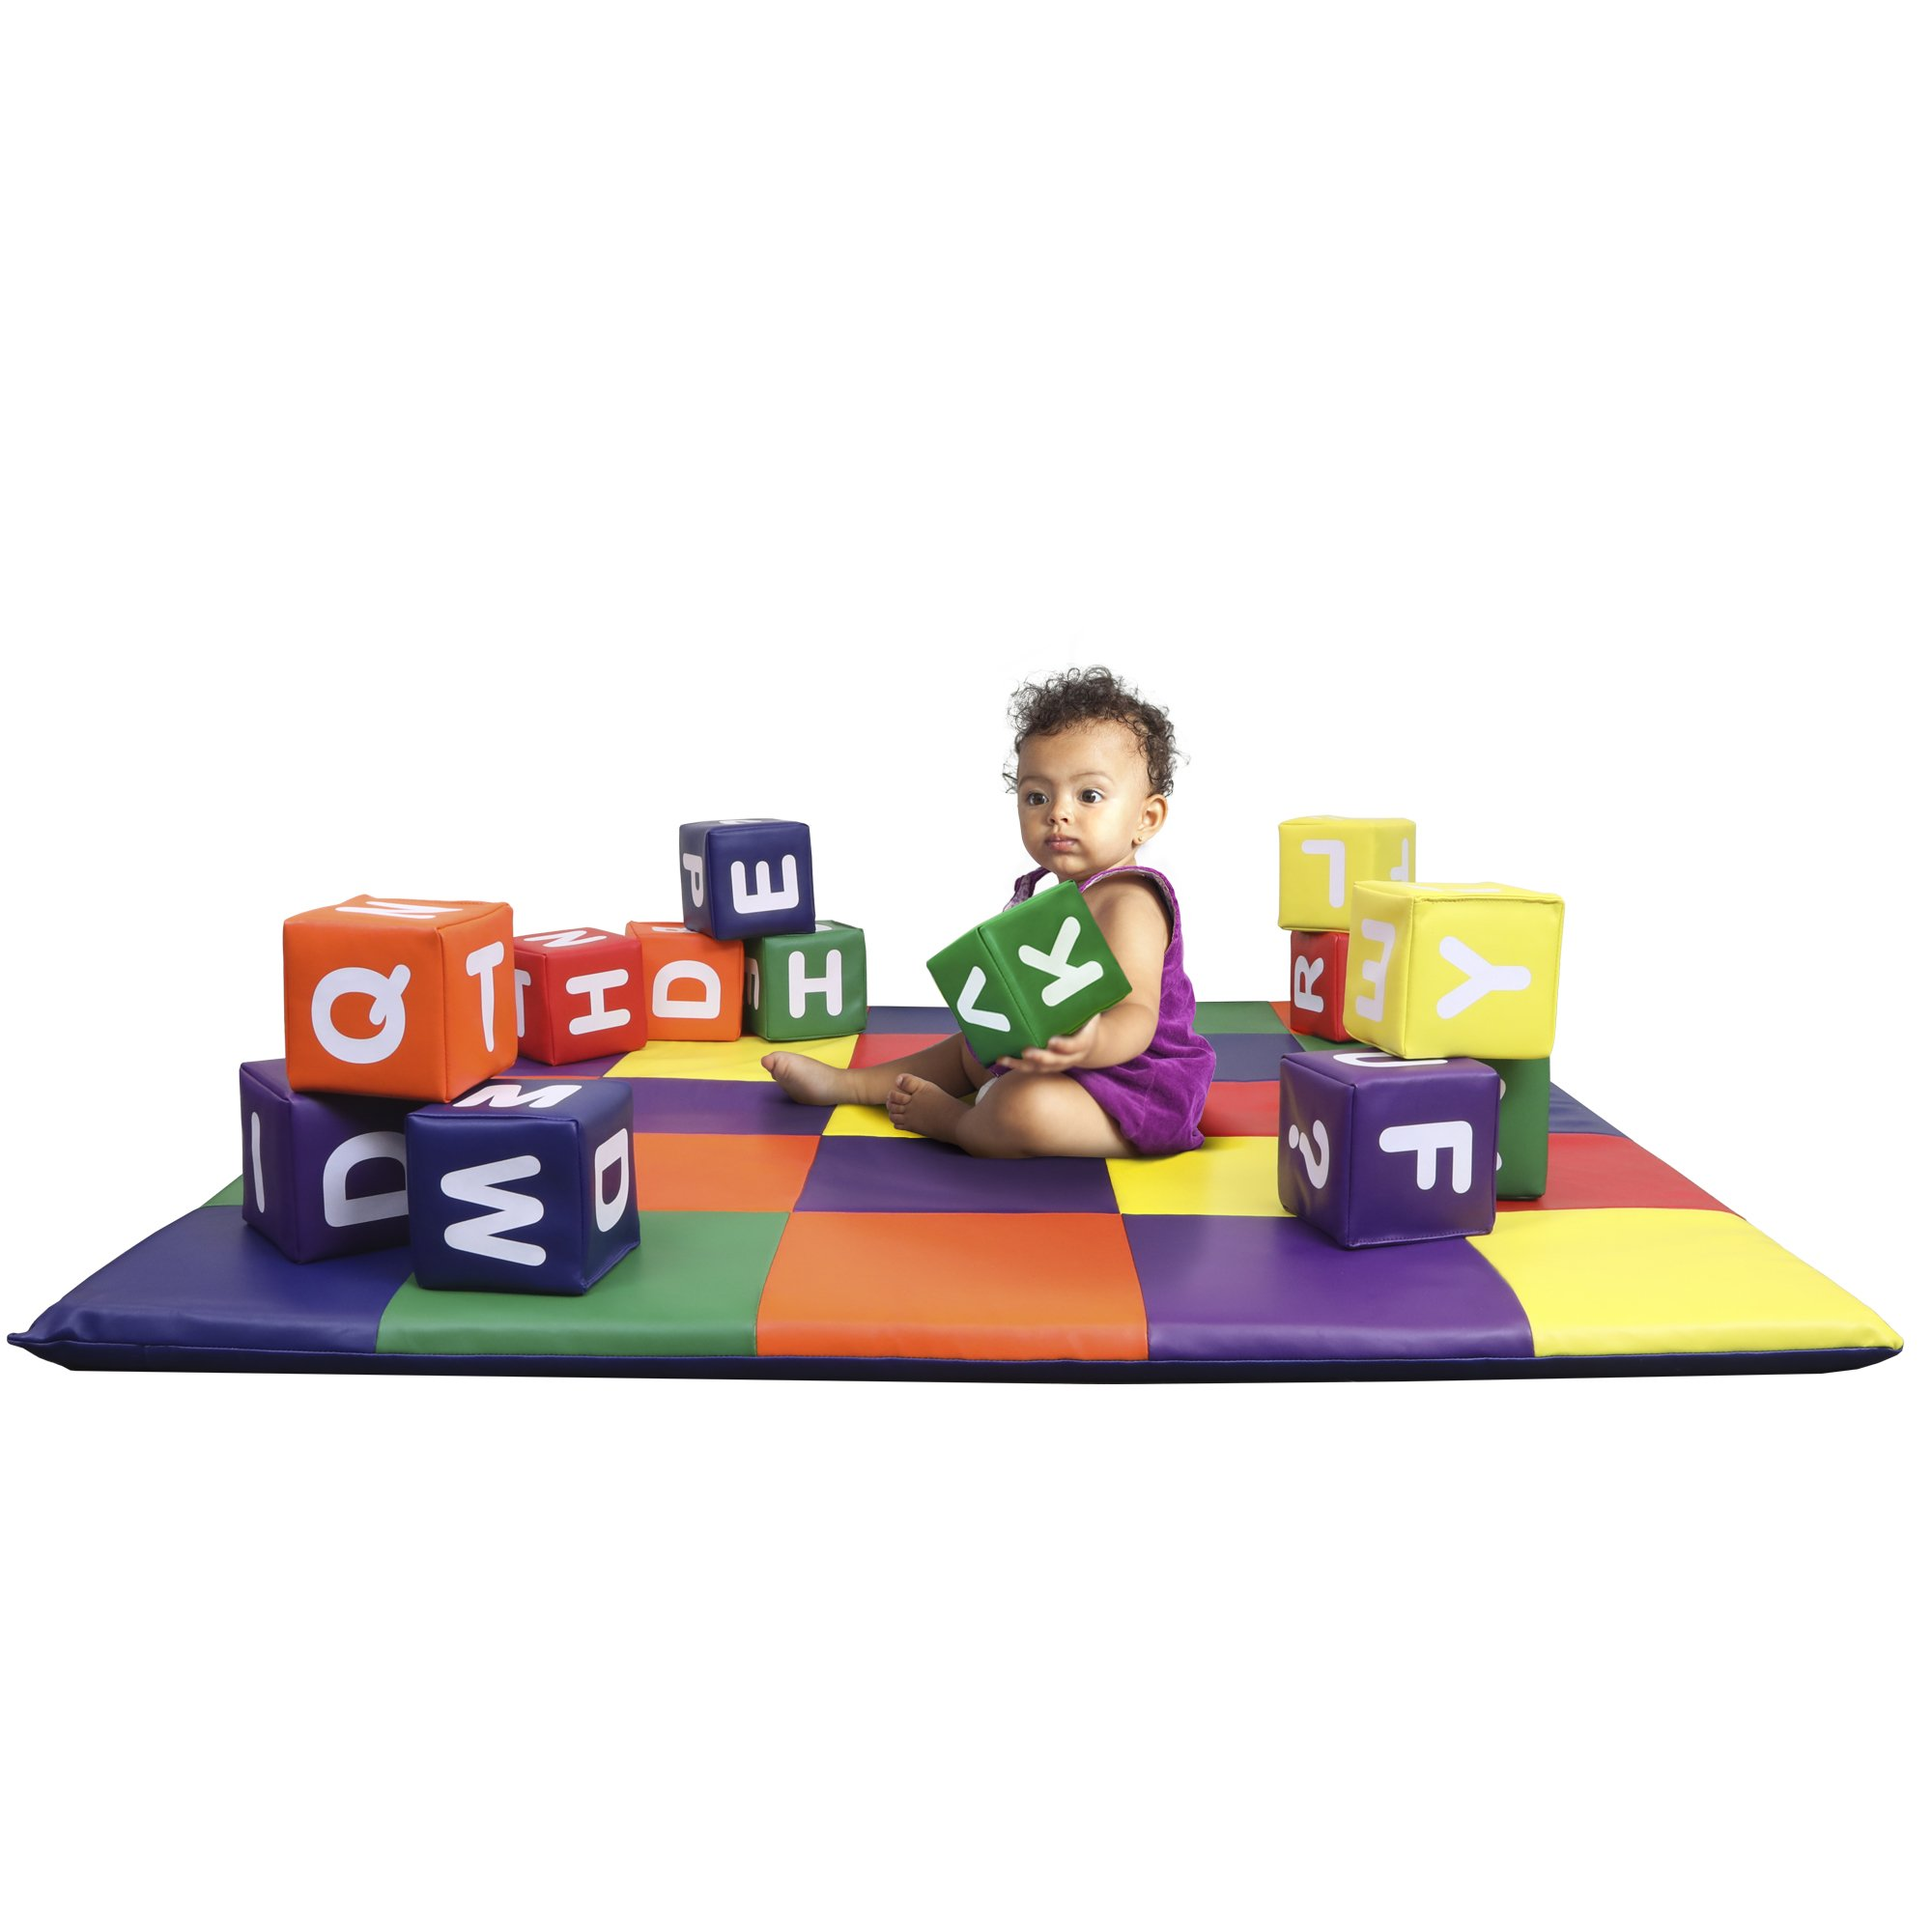 Dream Tree Building Blocks with Alphabet [Set of 12] Washable, Non-Toxic CPSIA Compliant Learning Toys Soft Foam Blocks for Toddler, Baby, Kids, and Preschool …